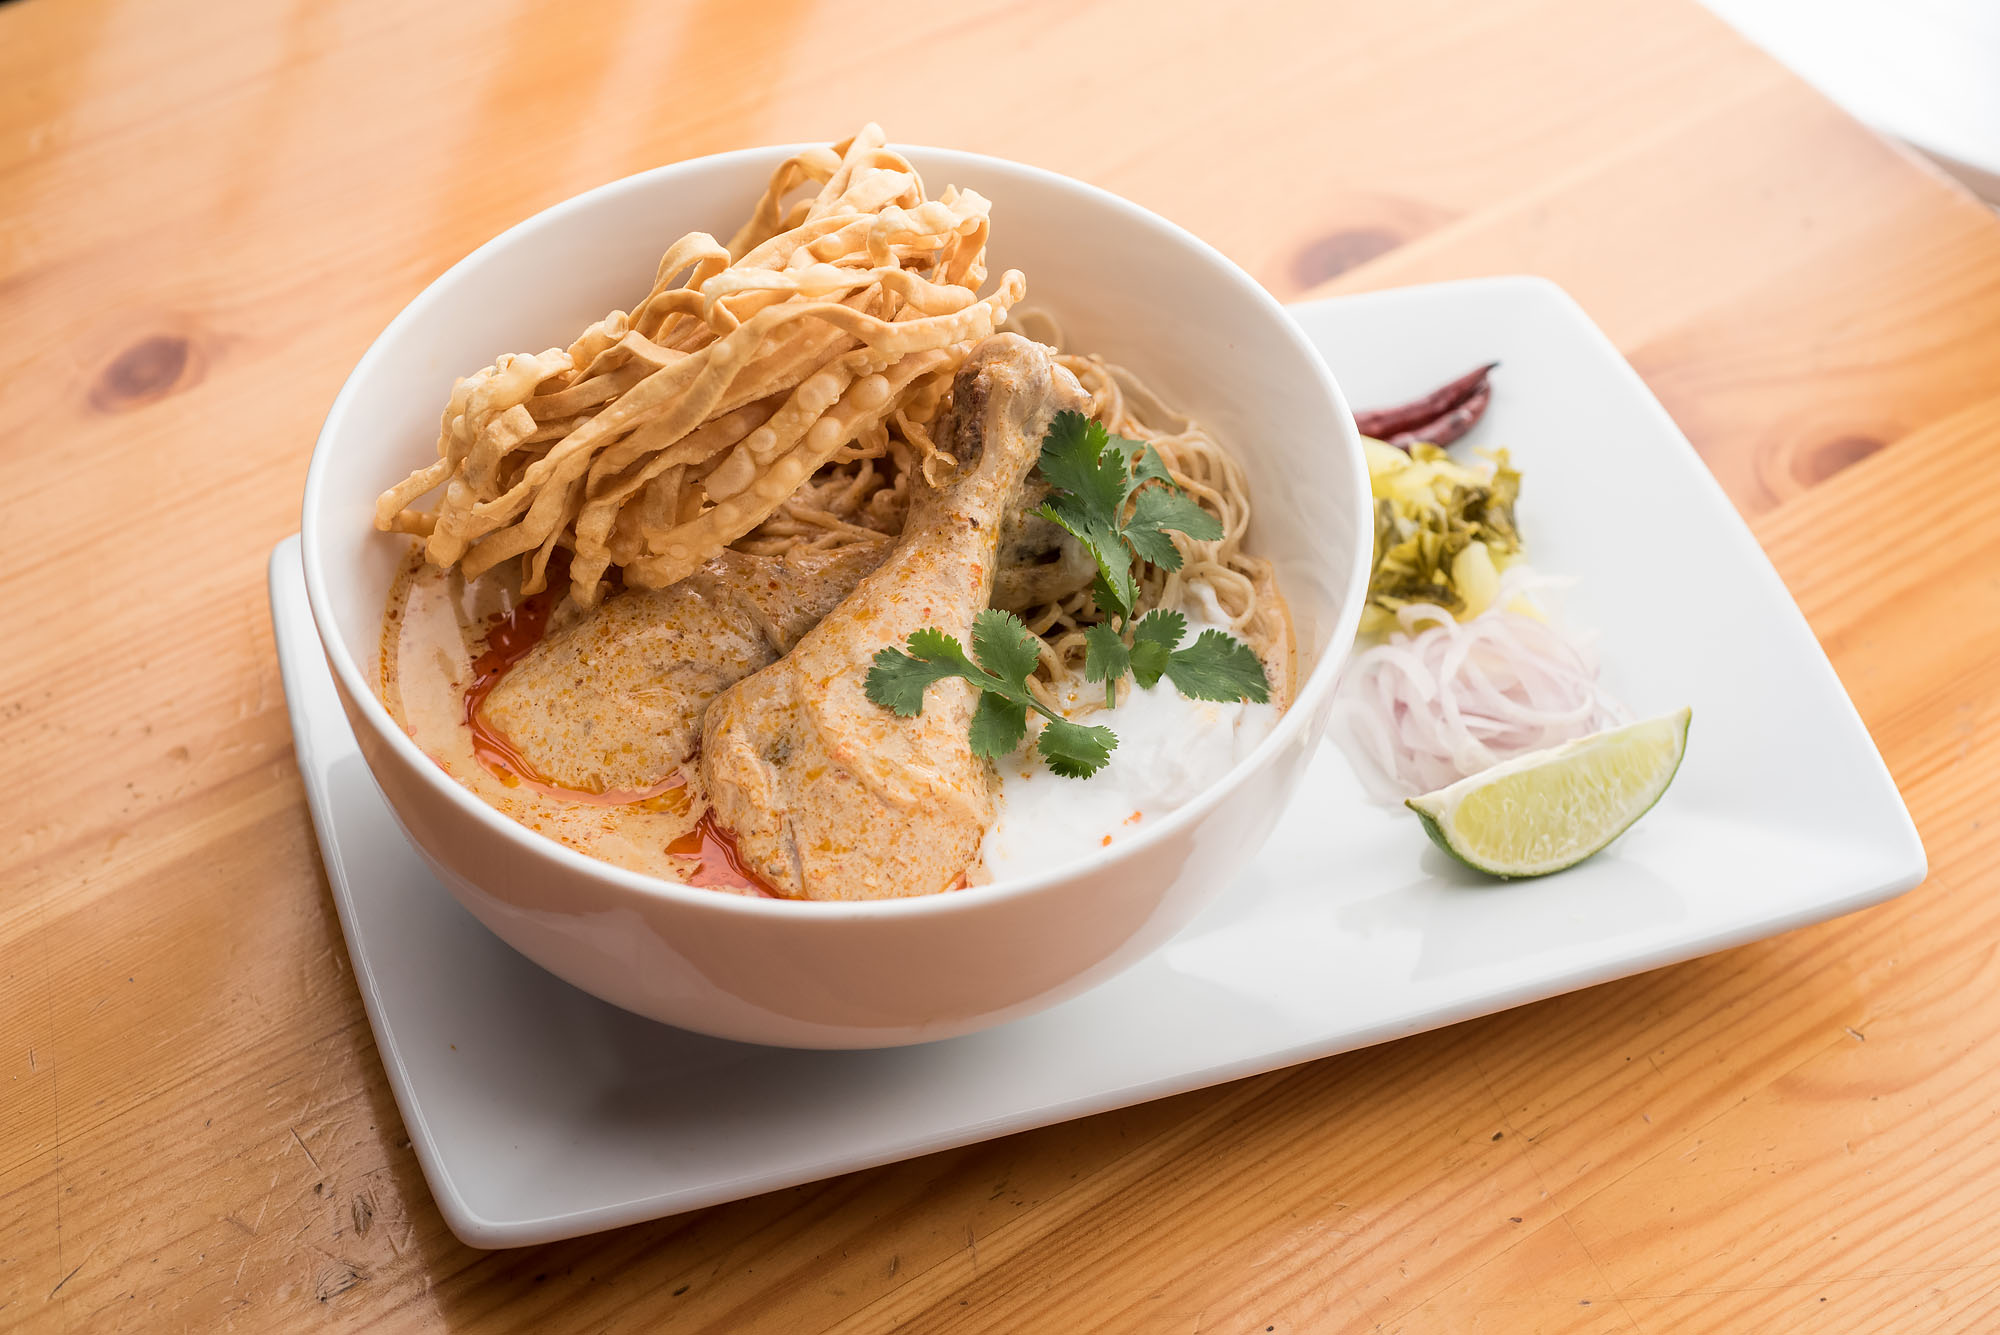 Khao soi at Ayara Thai, presented in a white bowl with lime wedge on the side.